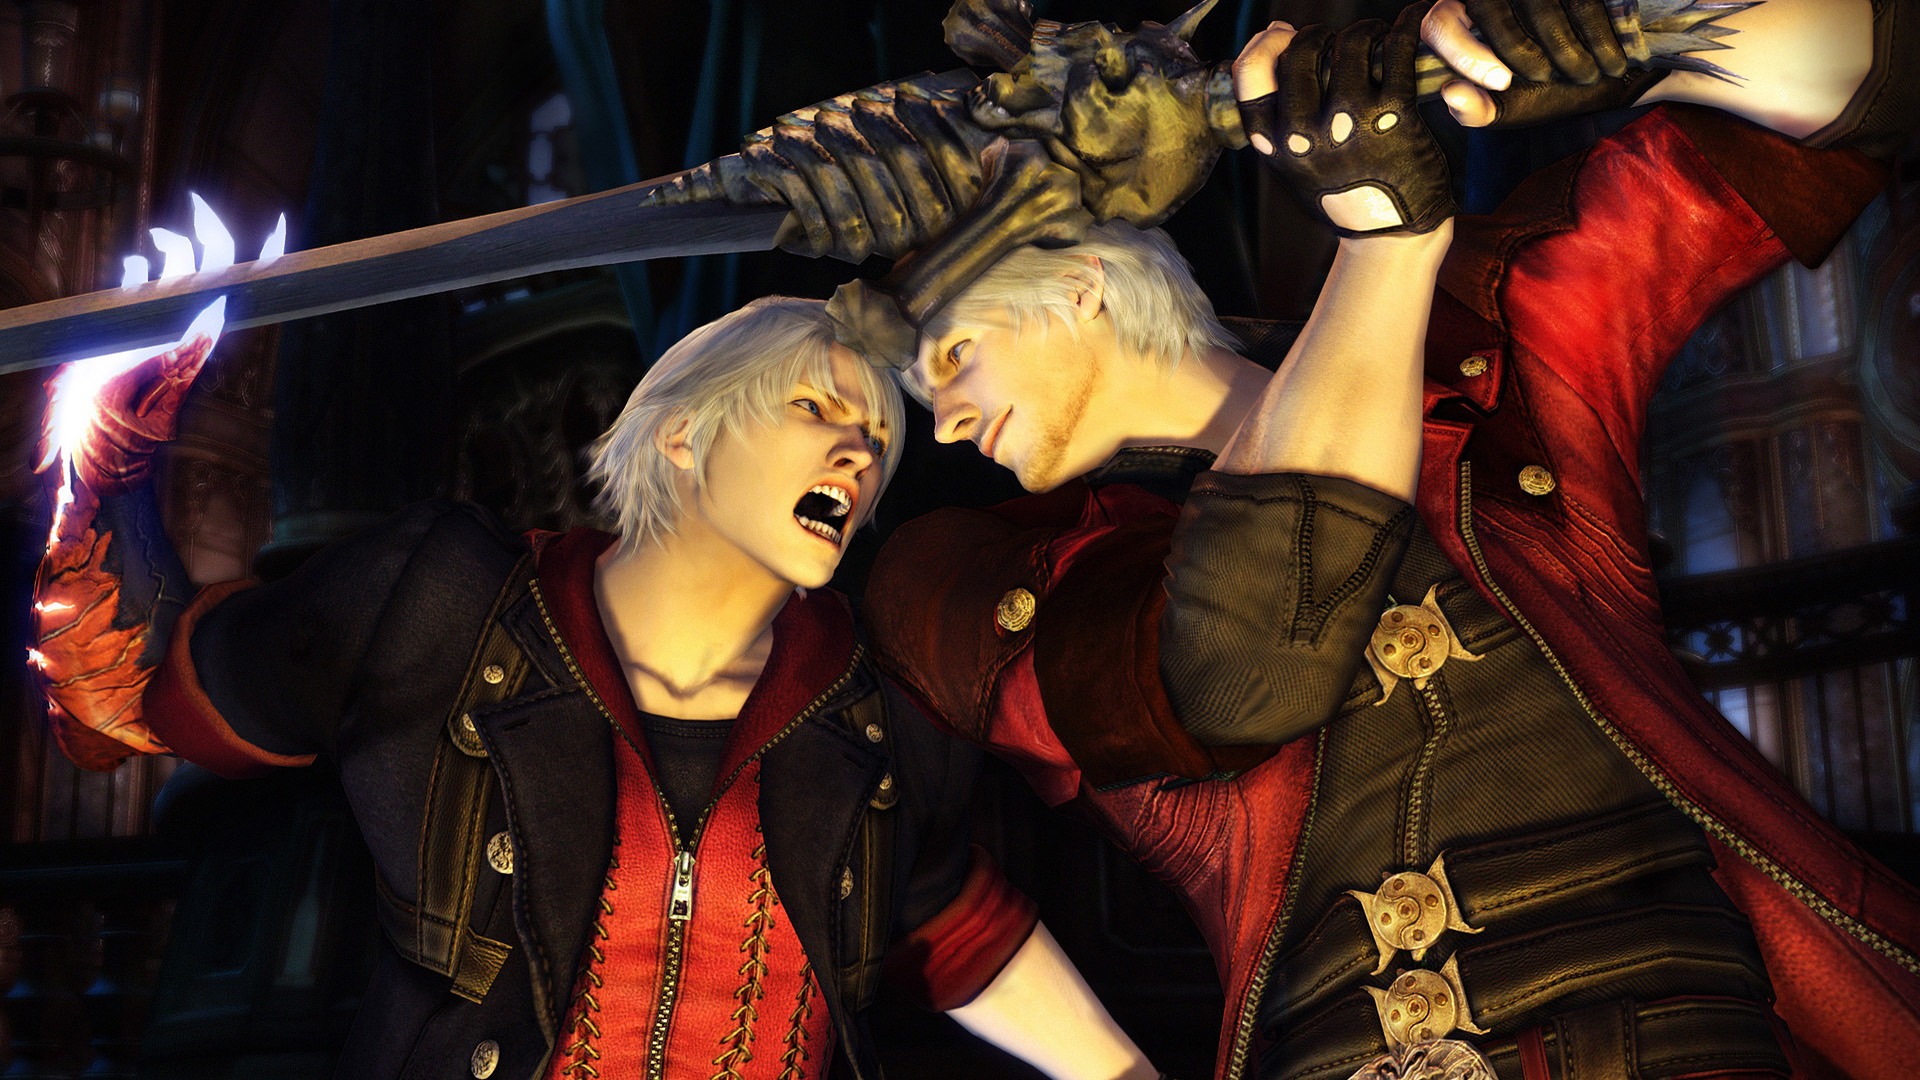 Devil may cry 4 sibling rivalry wallpapers